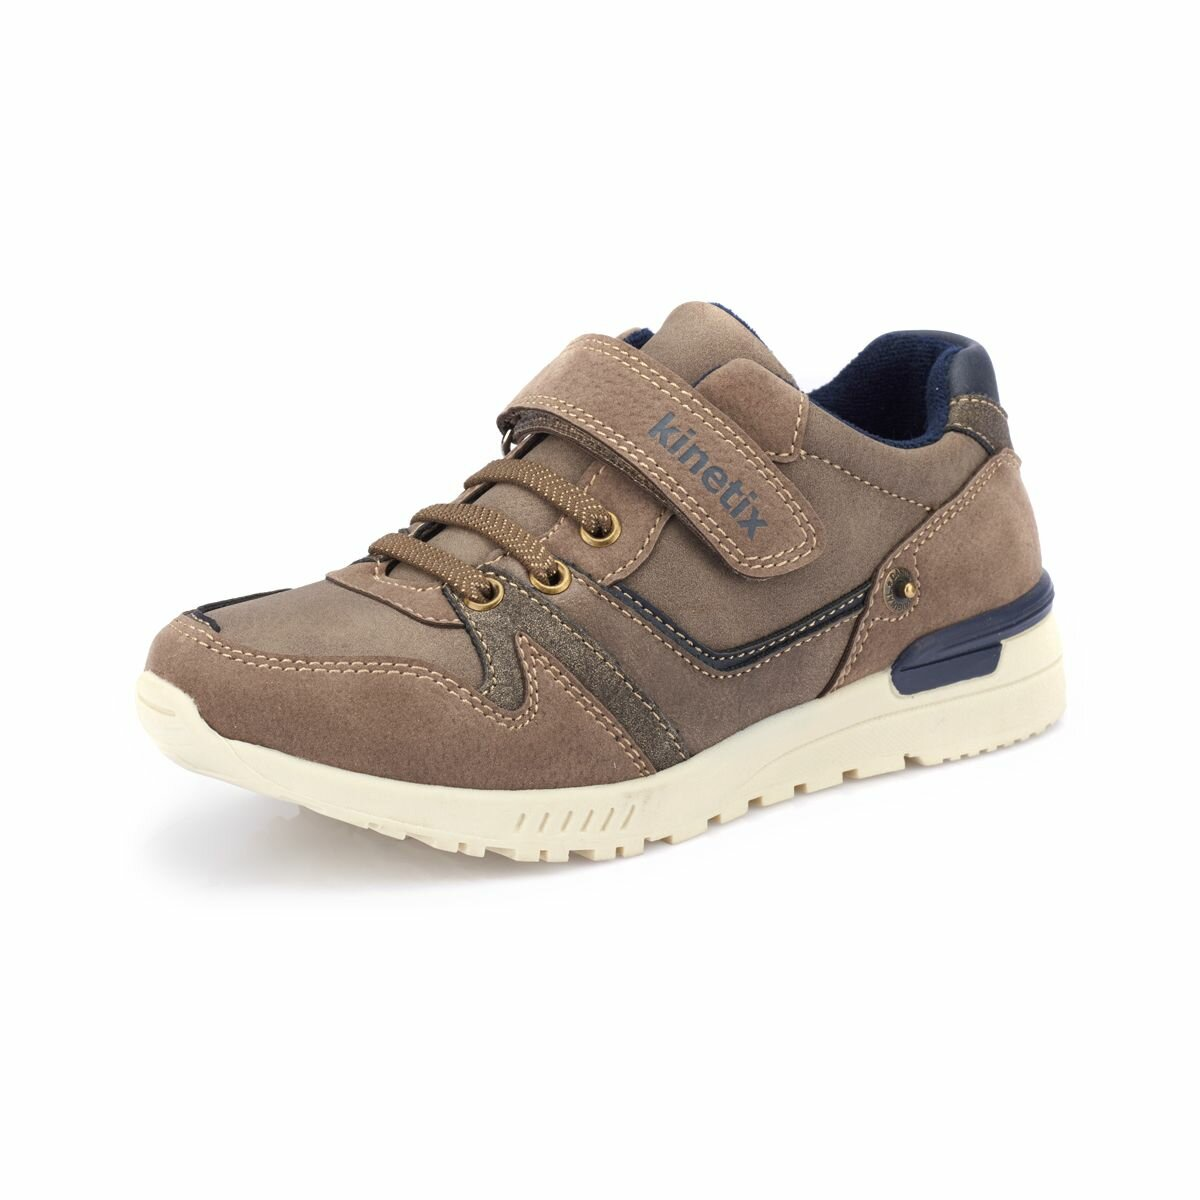 FLO MARCUS Brown Male Child Sports Shoes KINETIX